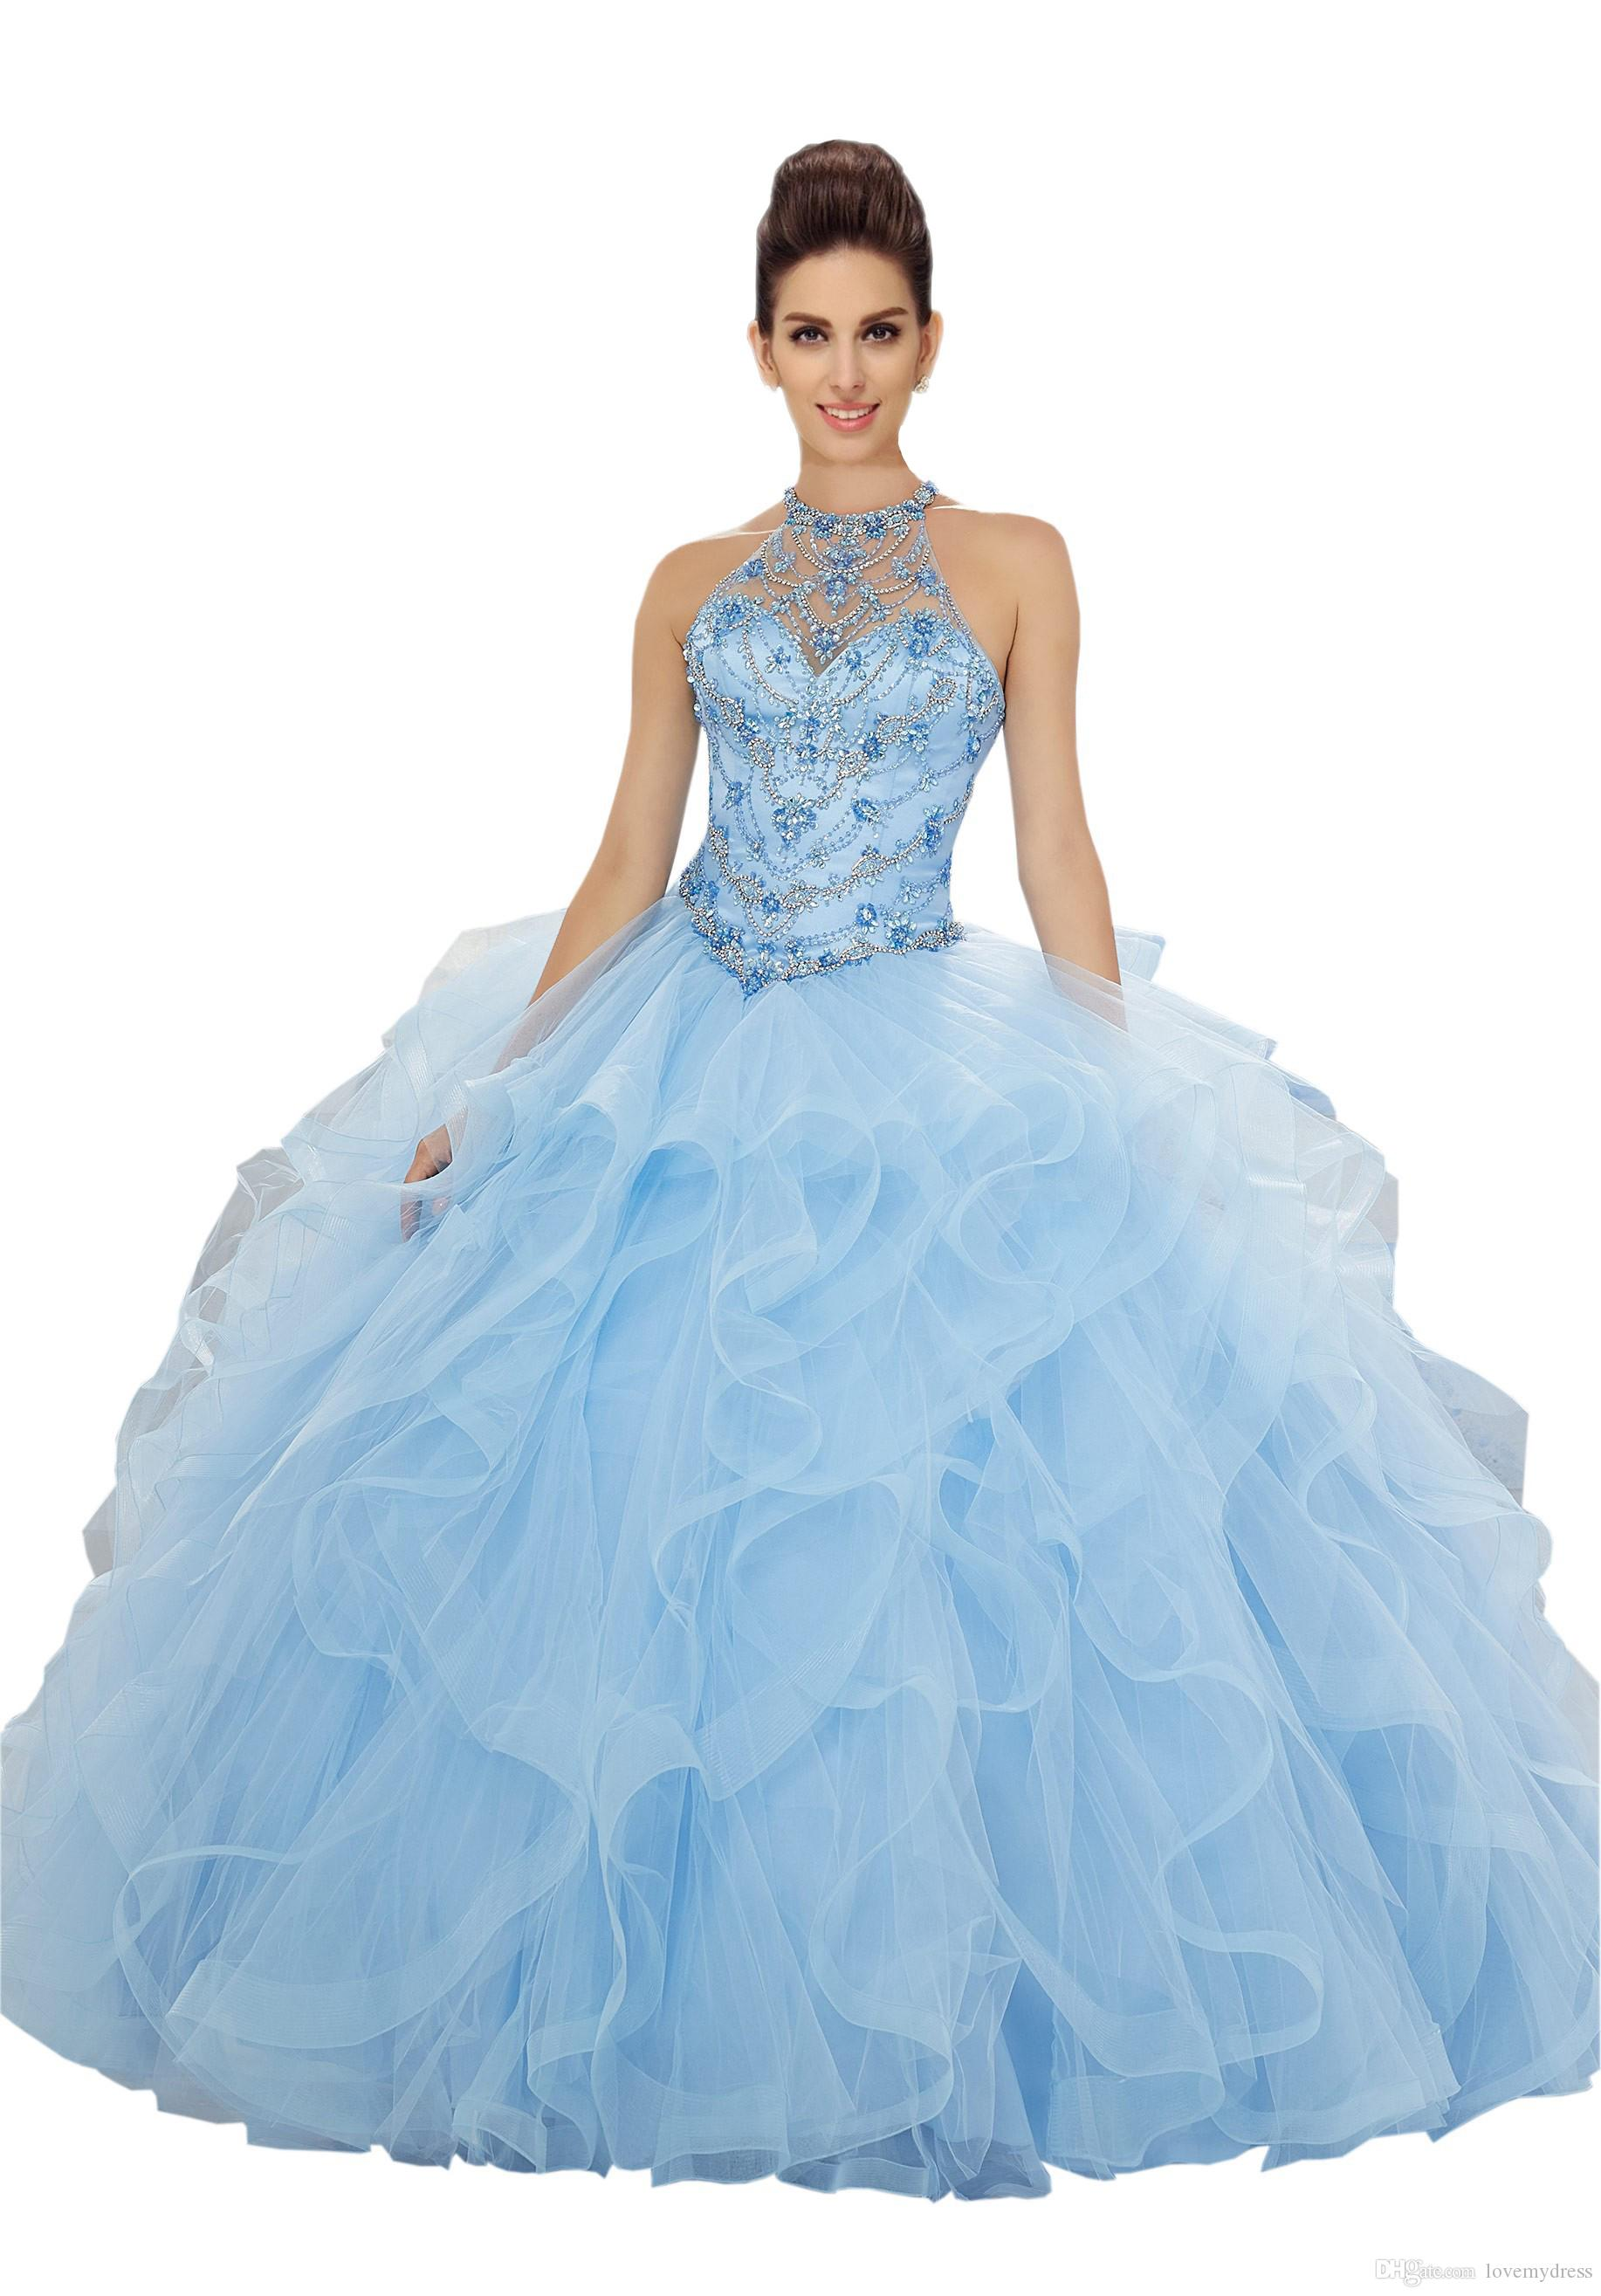 Charming Red Ruffles Quinceanera Dresses Ball Gown Halter Sheer Neck Open Back Rhinestones Crystal Sequin Tulle Prom Sweet 16 Dress Cheap